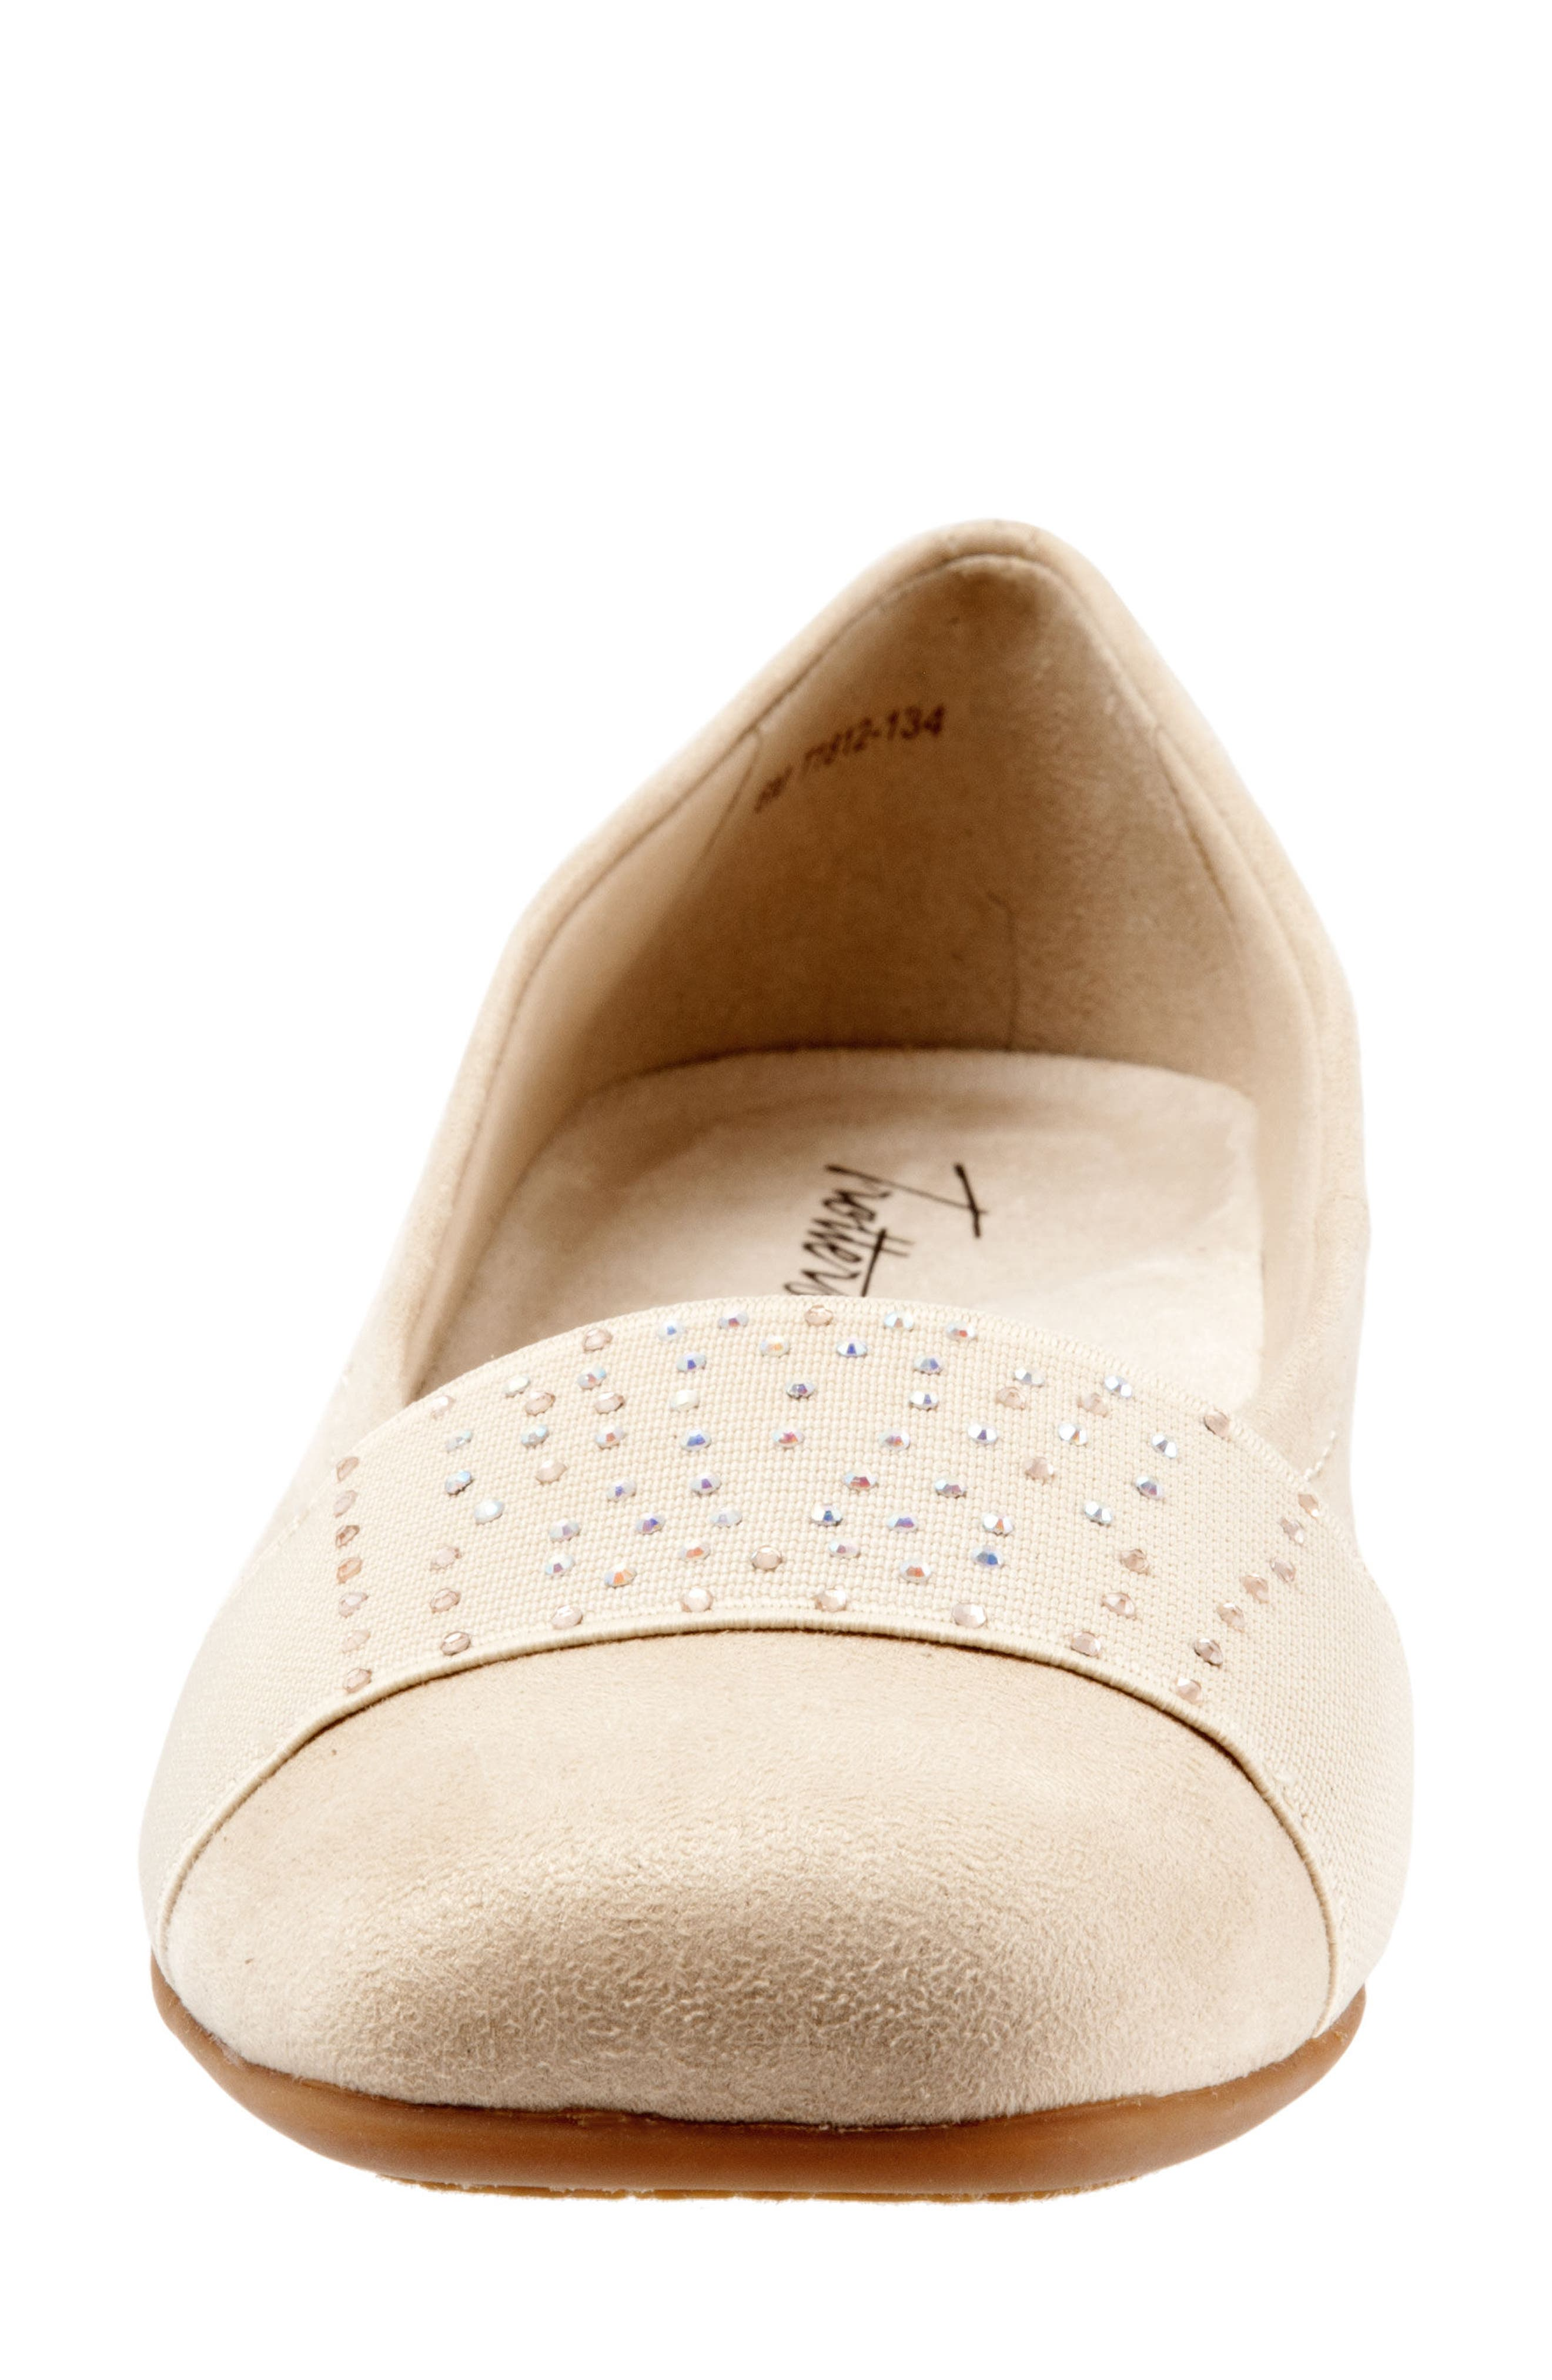 Samantha Flat,                             Alternate thumbnail 4, color,                             Nude Suede